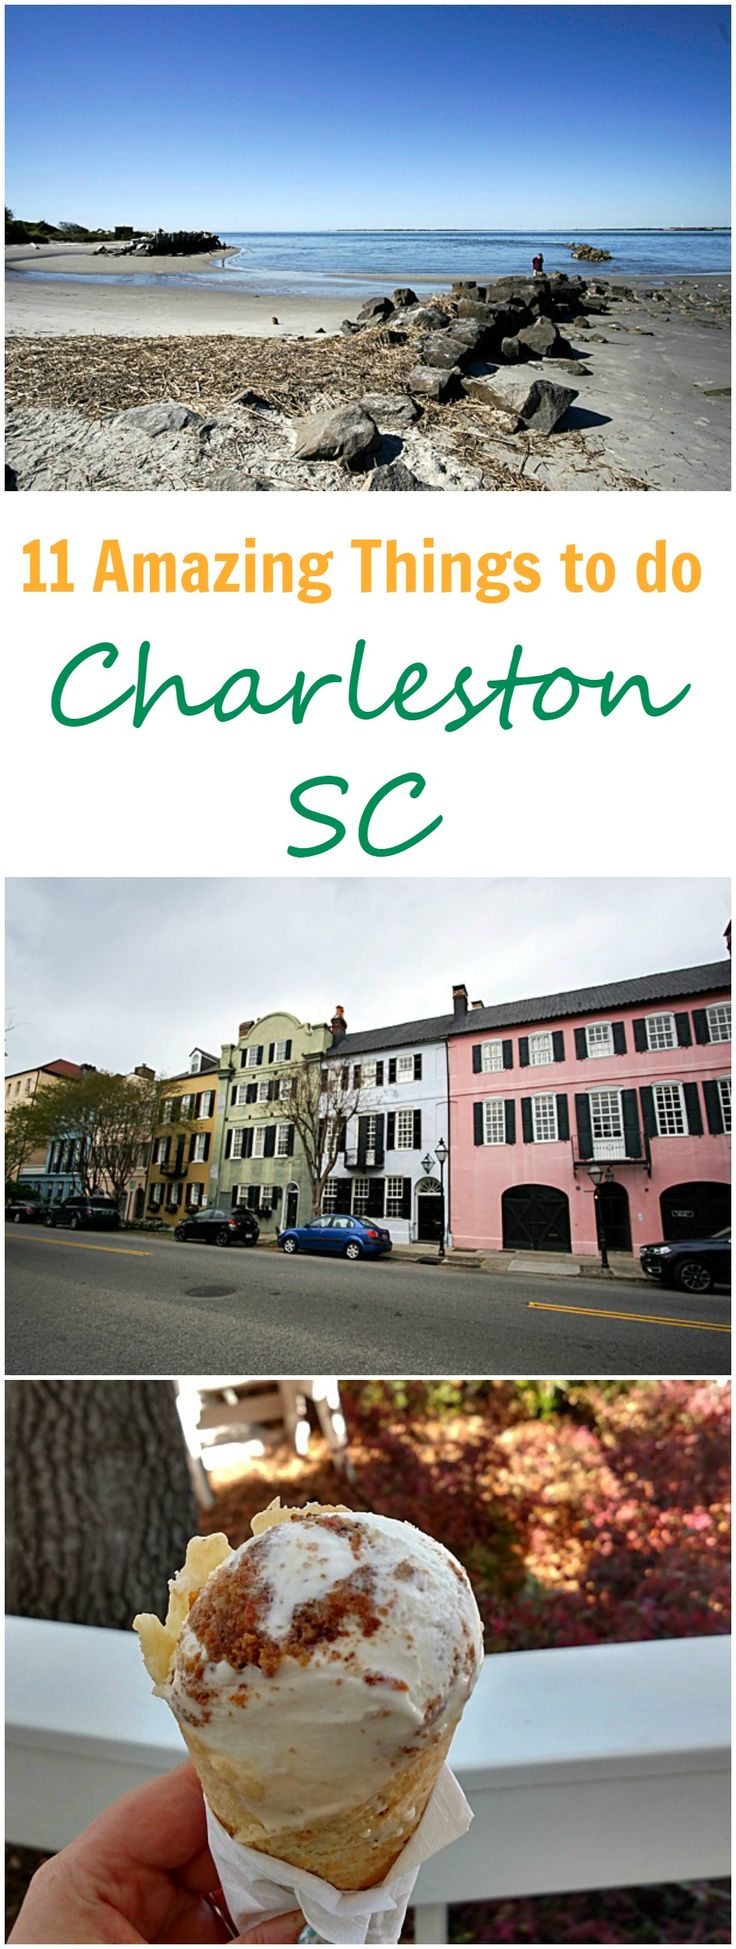 11 amazing things to do in charleston sc alaska cruise for Things to do in charleston nc